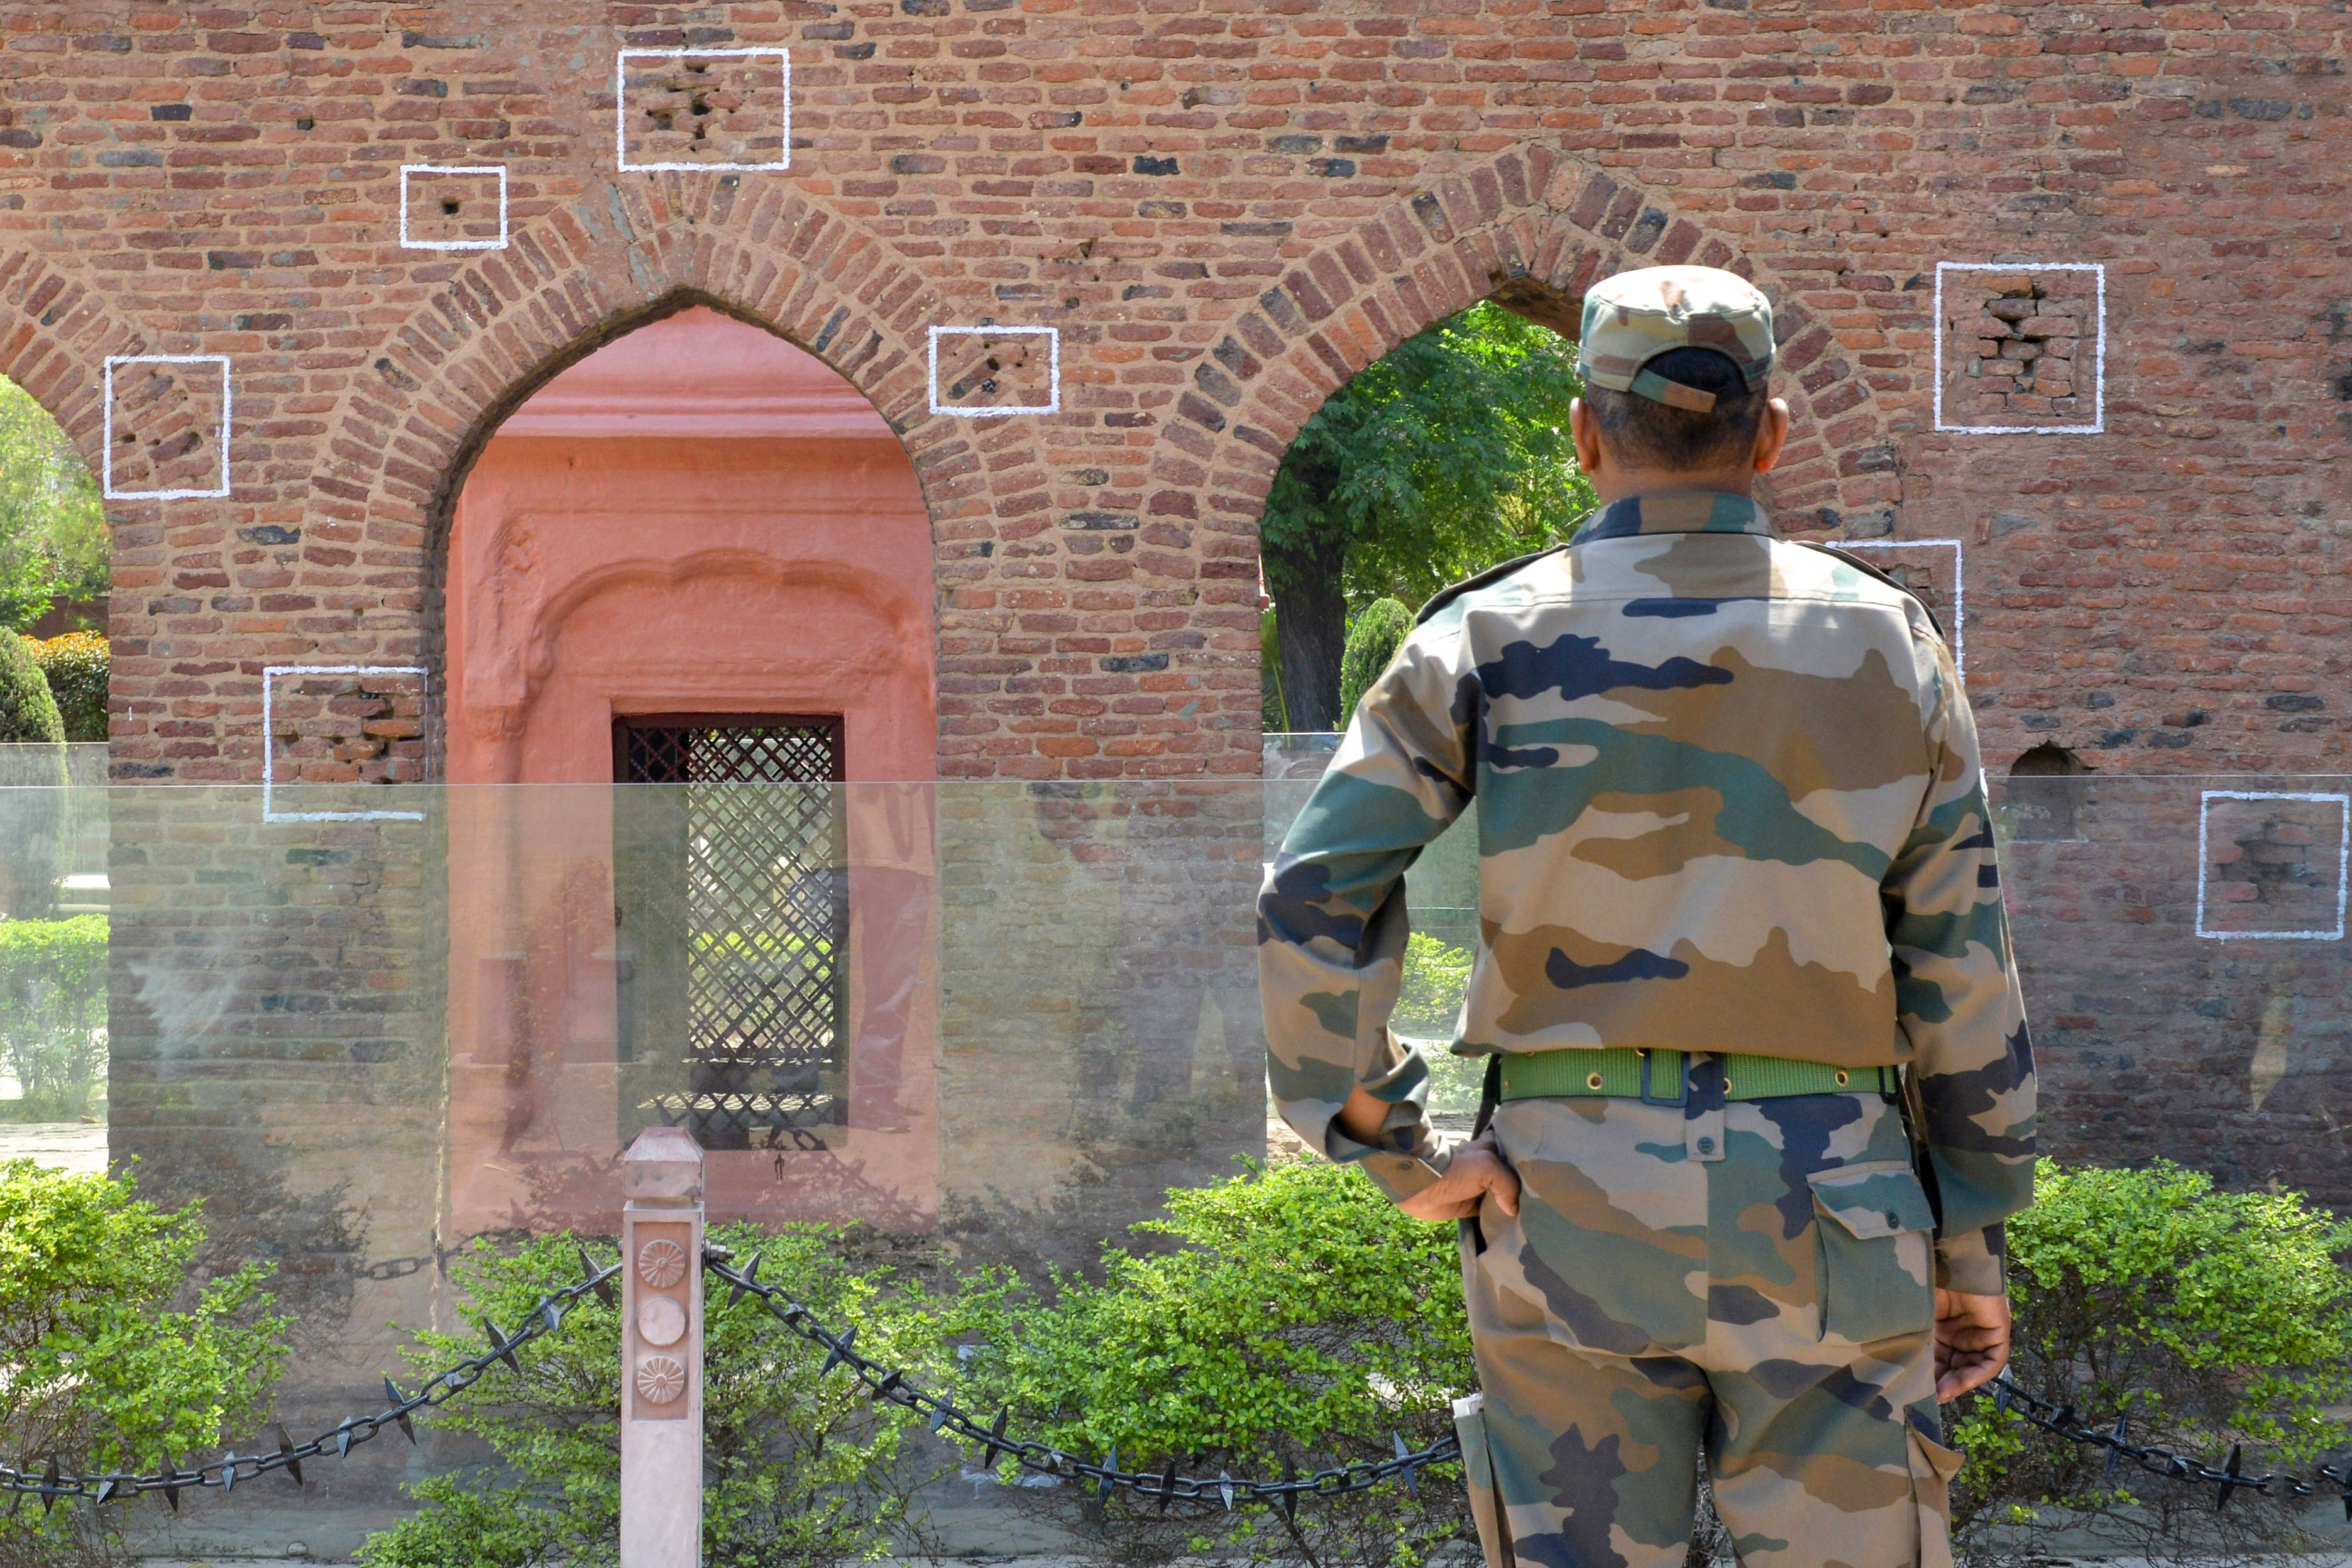 An Indian army personnel looks at the bullet marks on a wall near the Jallianwala Bagh Martyrs' Memorial ahead of the 100th anniversary of the Jallianwala Bagh massacre in Amritsar (Pic by: NARINDER NANU / AFP)